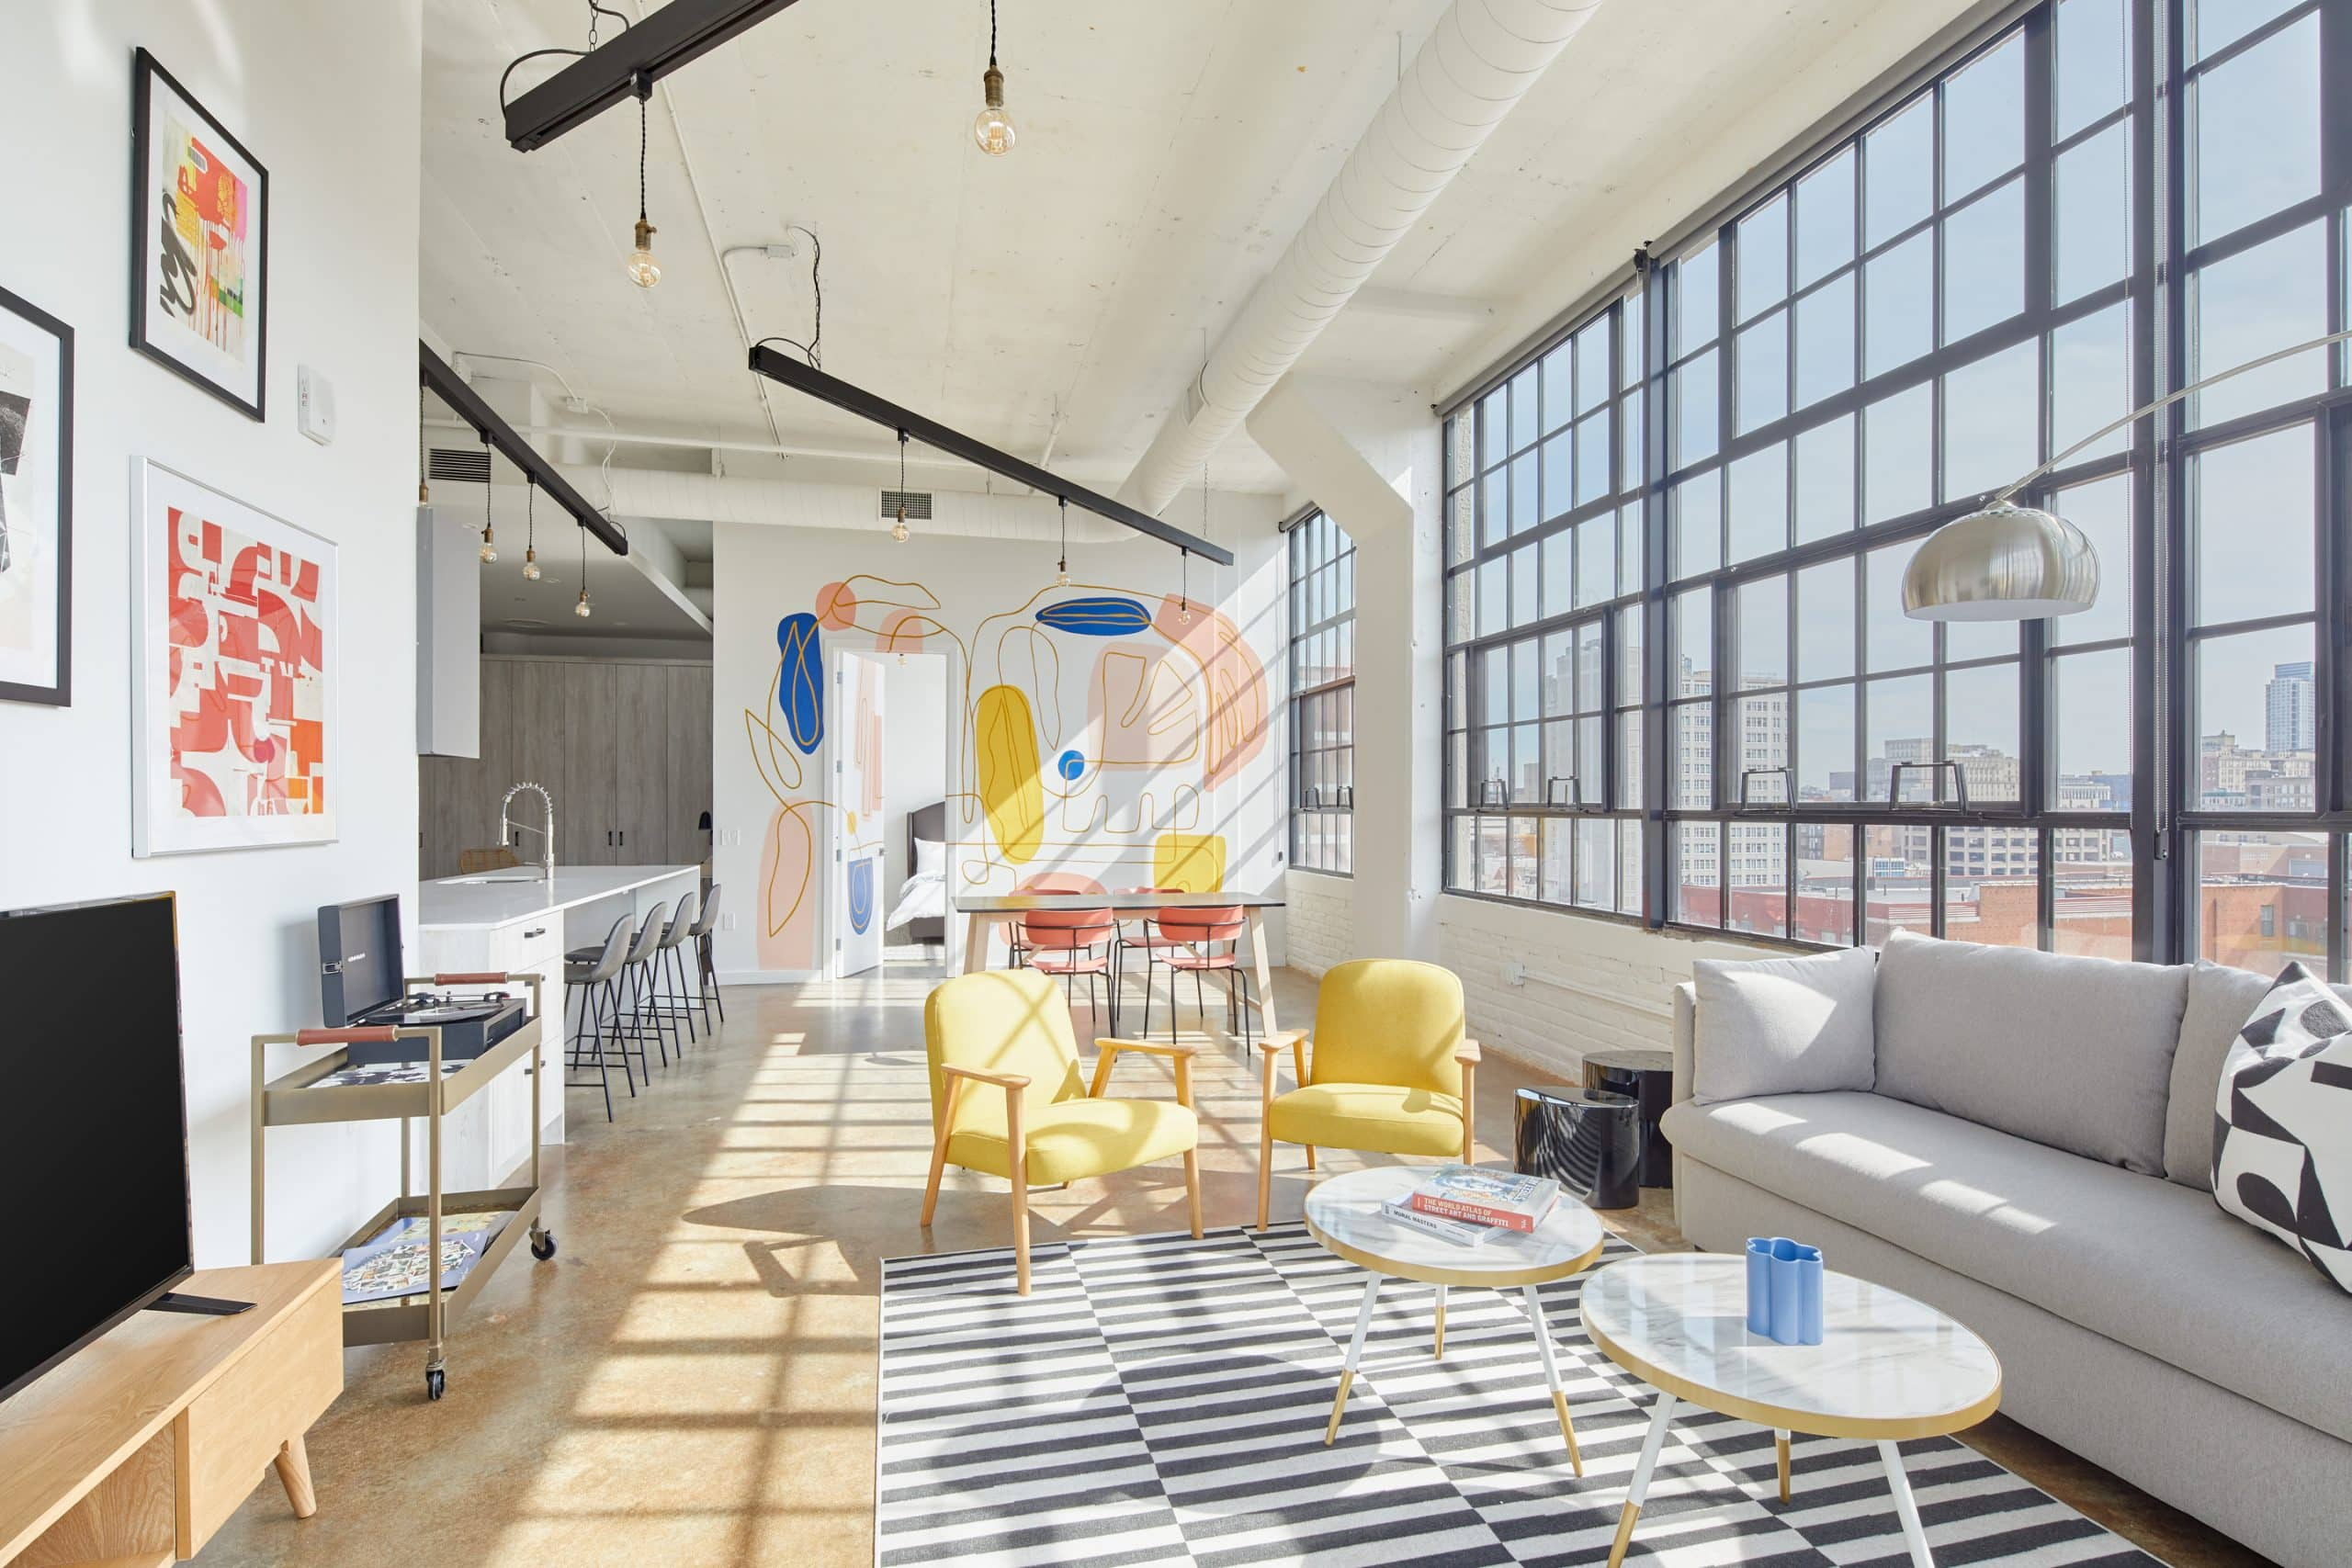 A mural by Dora Cuenca in the penthouse at the Heid Building in Philadelphia